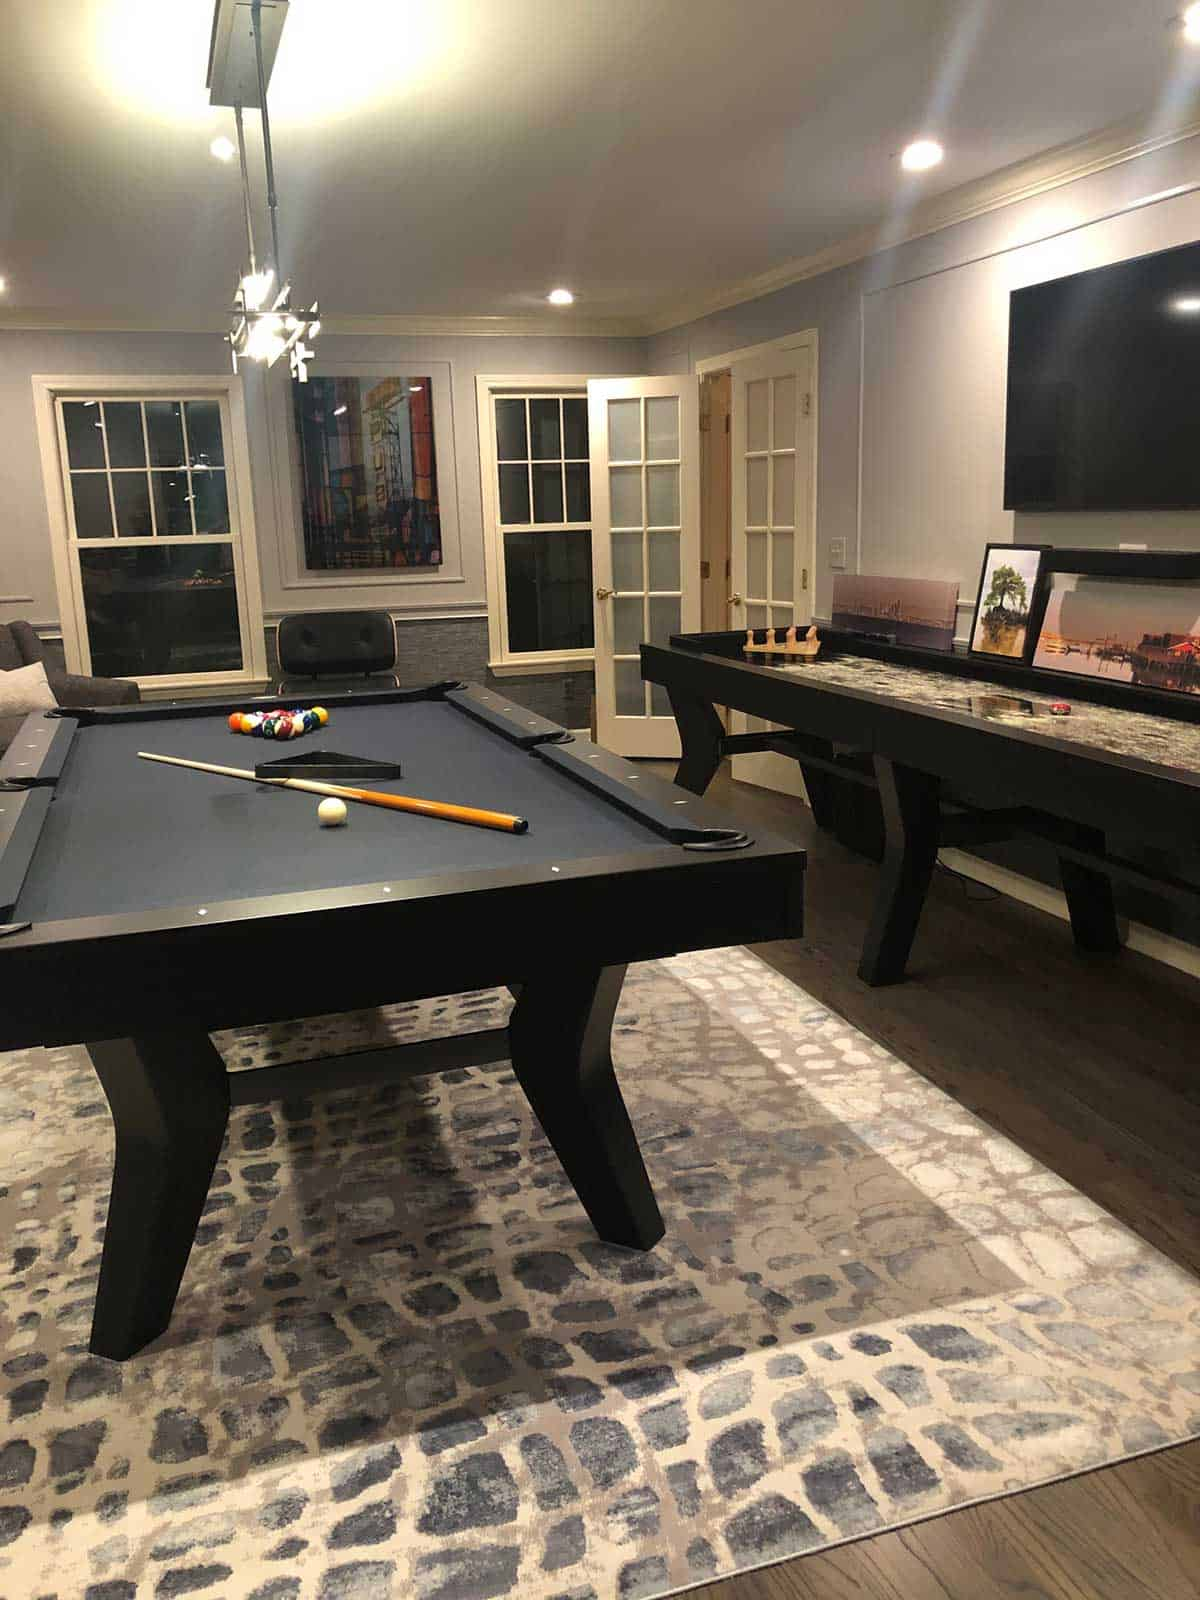 monroe game room with pool table and shuffleboard table